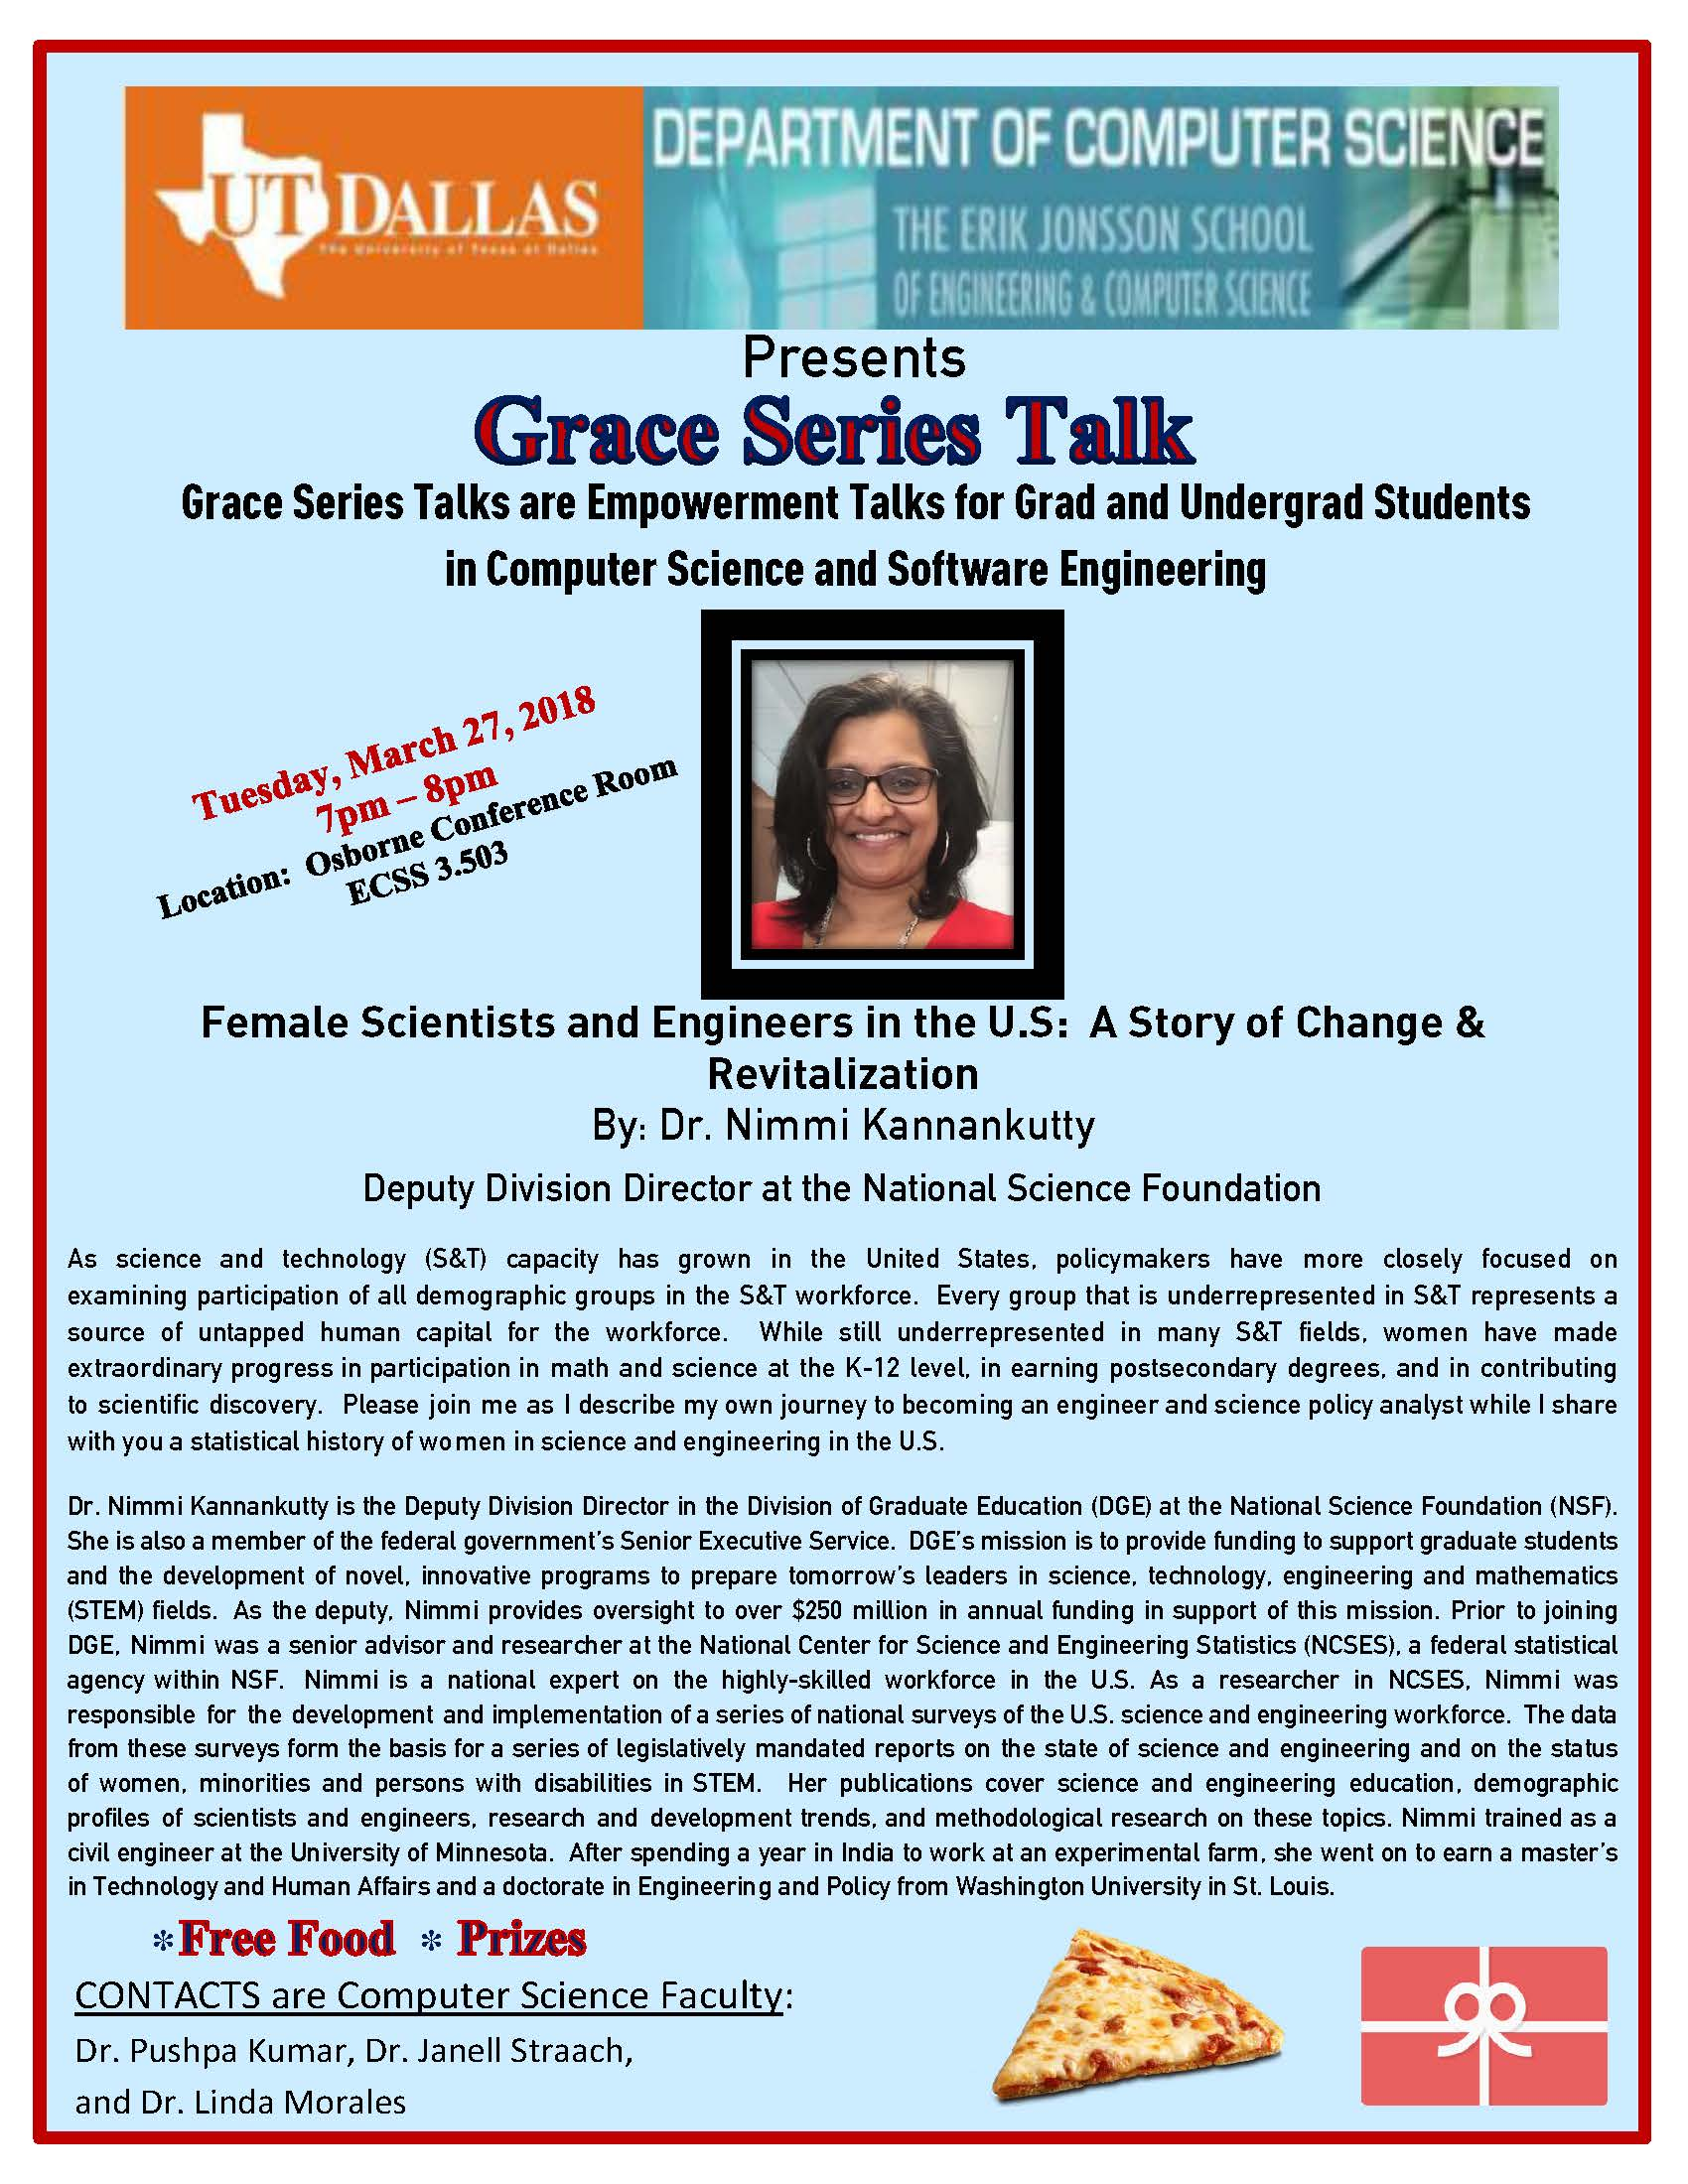 Computer Science Grace Series Presents Dr. Nimmi Kannankutty, Deputy Division Director at the NSF @ ECSS 3.50 (Osborne Conference Room)